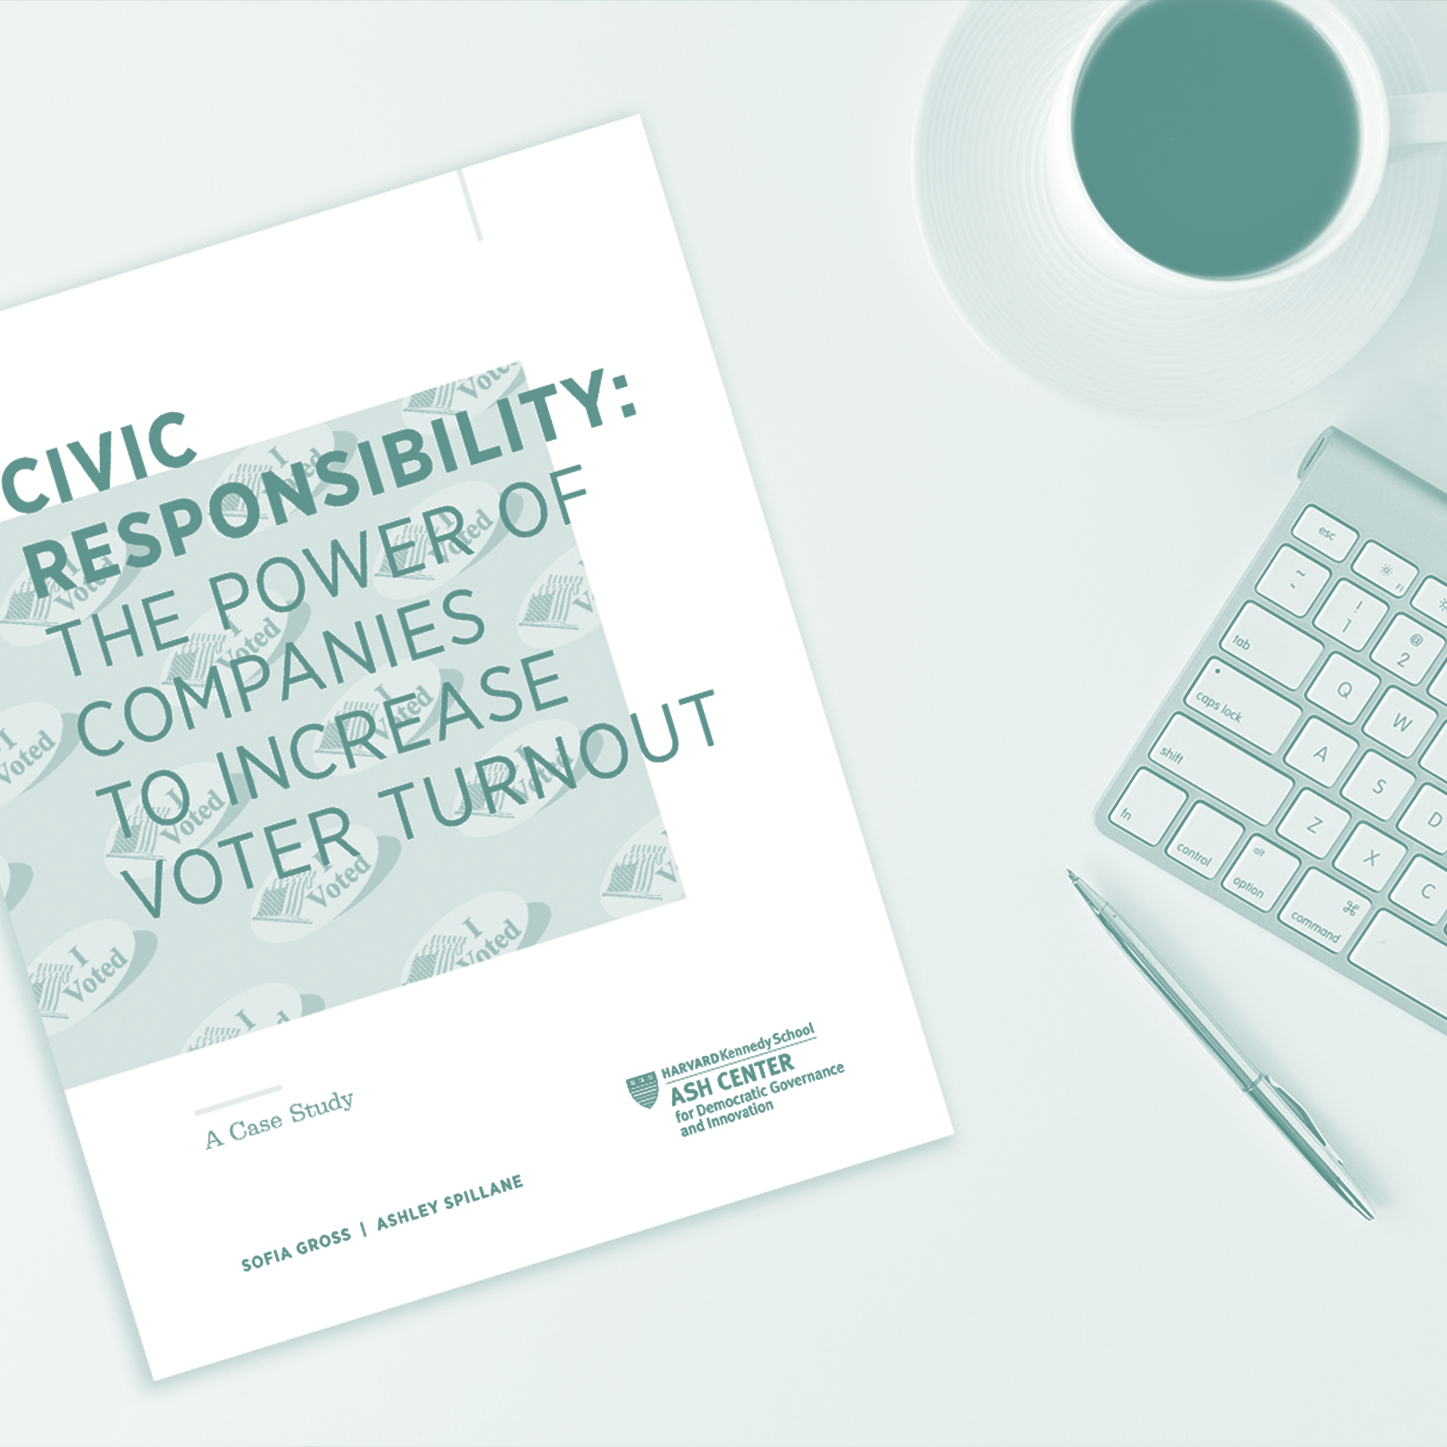 HARVARD ASH CENTER CIVIC RESPONSIBILITY CASE STUDY: THE POWER OF COMPANIES TO INCREASE VOTER TURNOUT